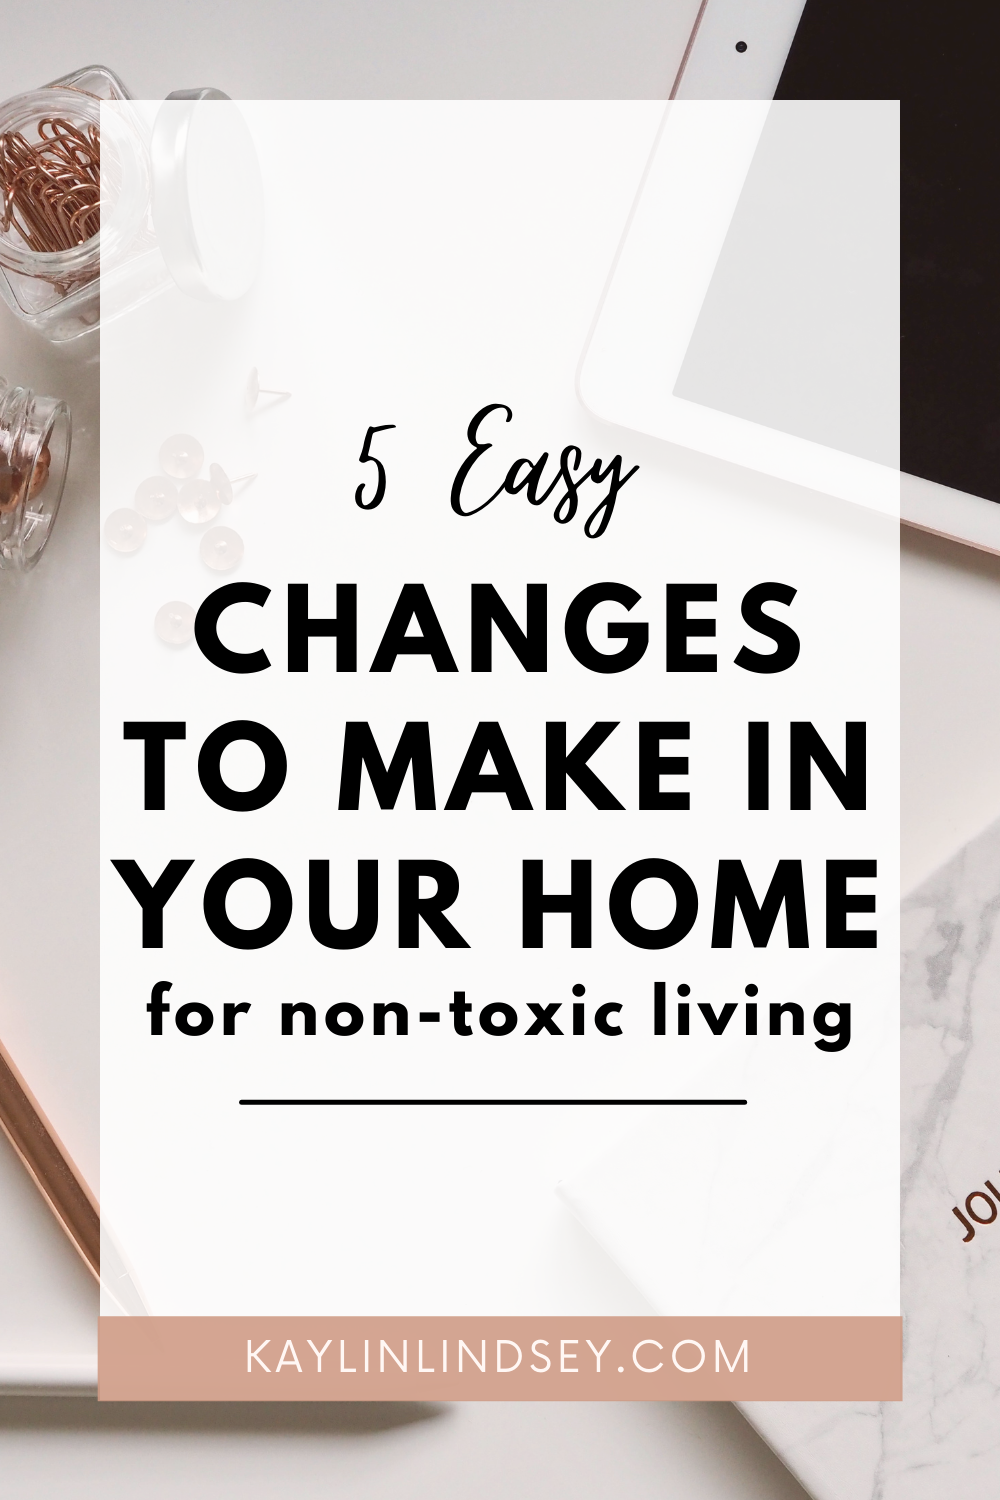 5 easy changes in your home for non-toxic living